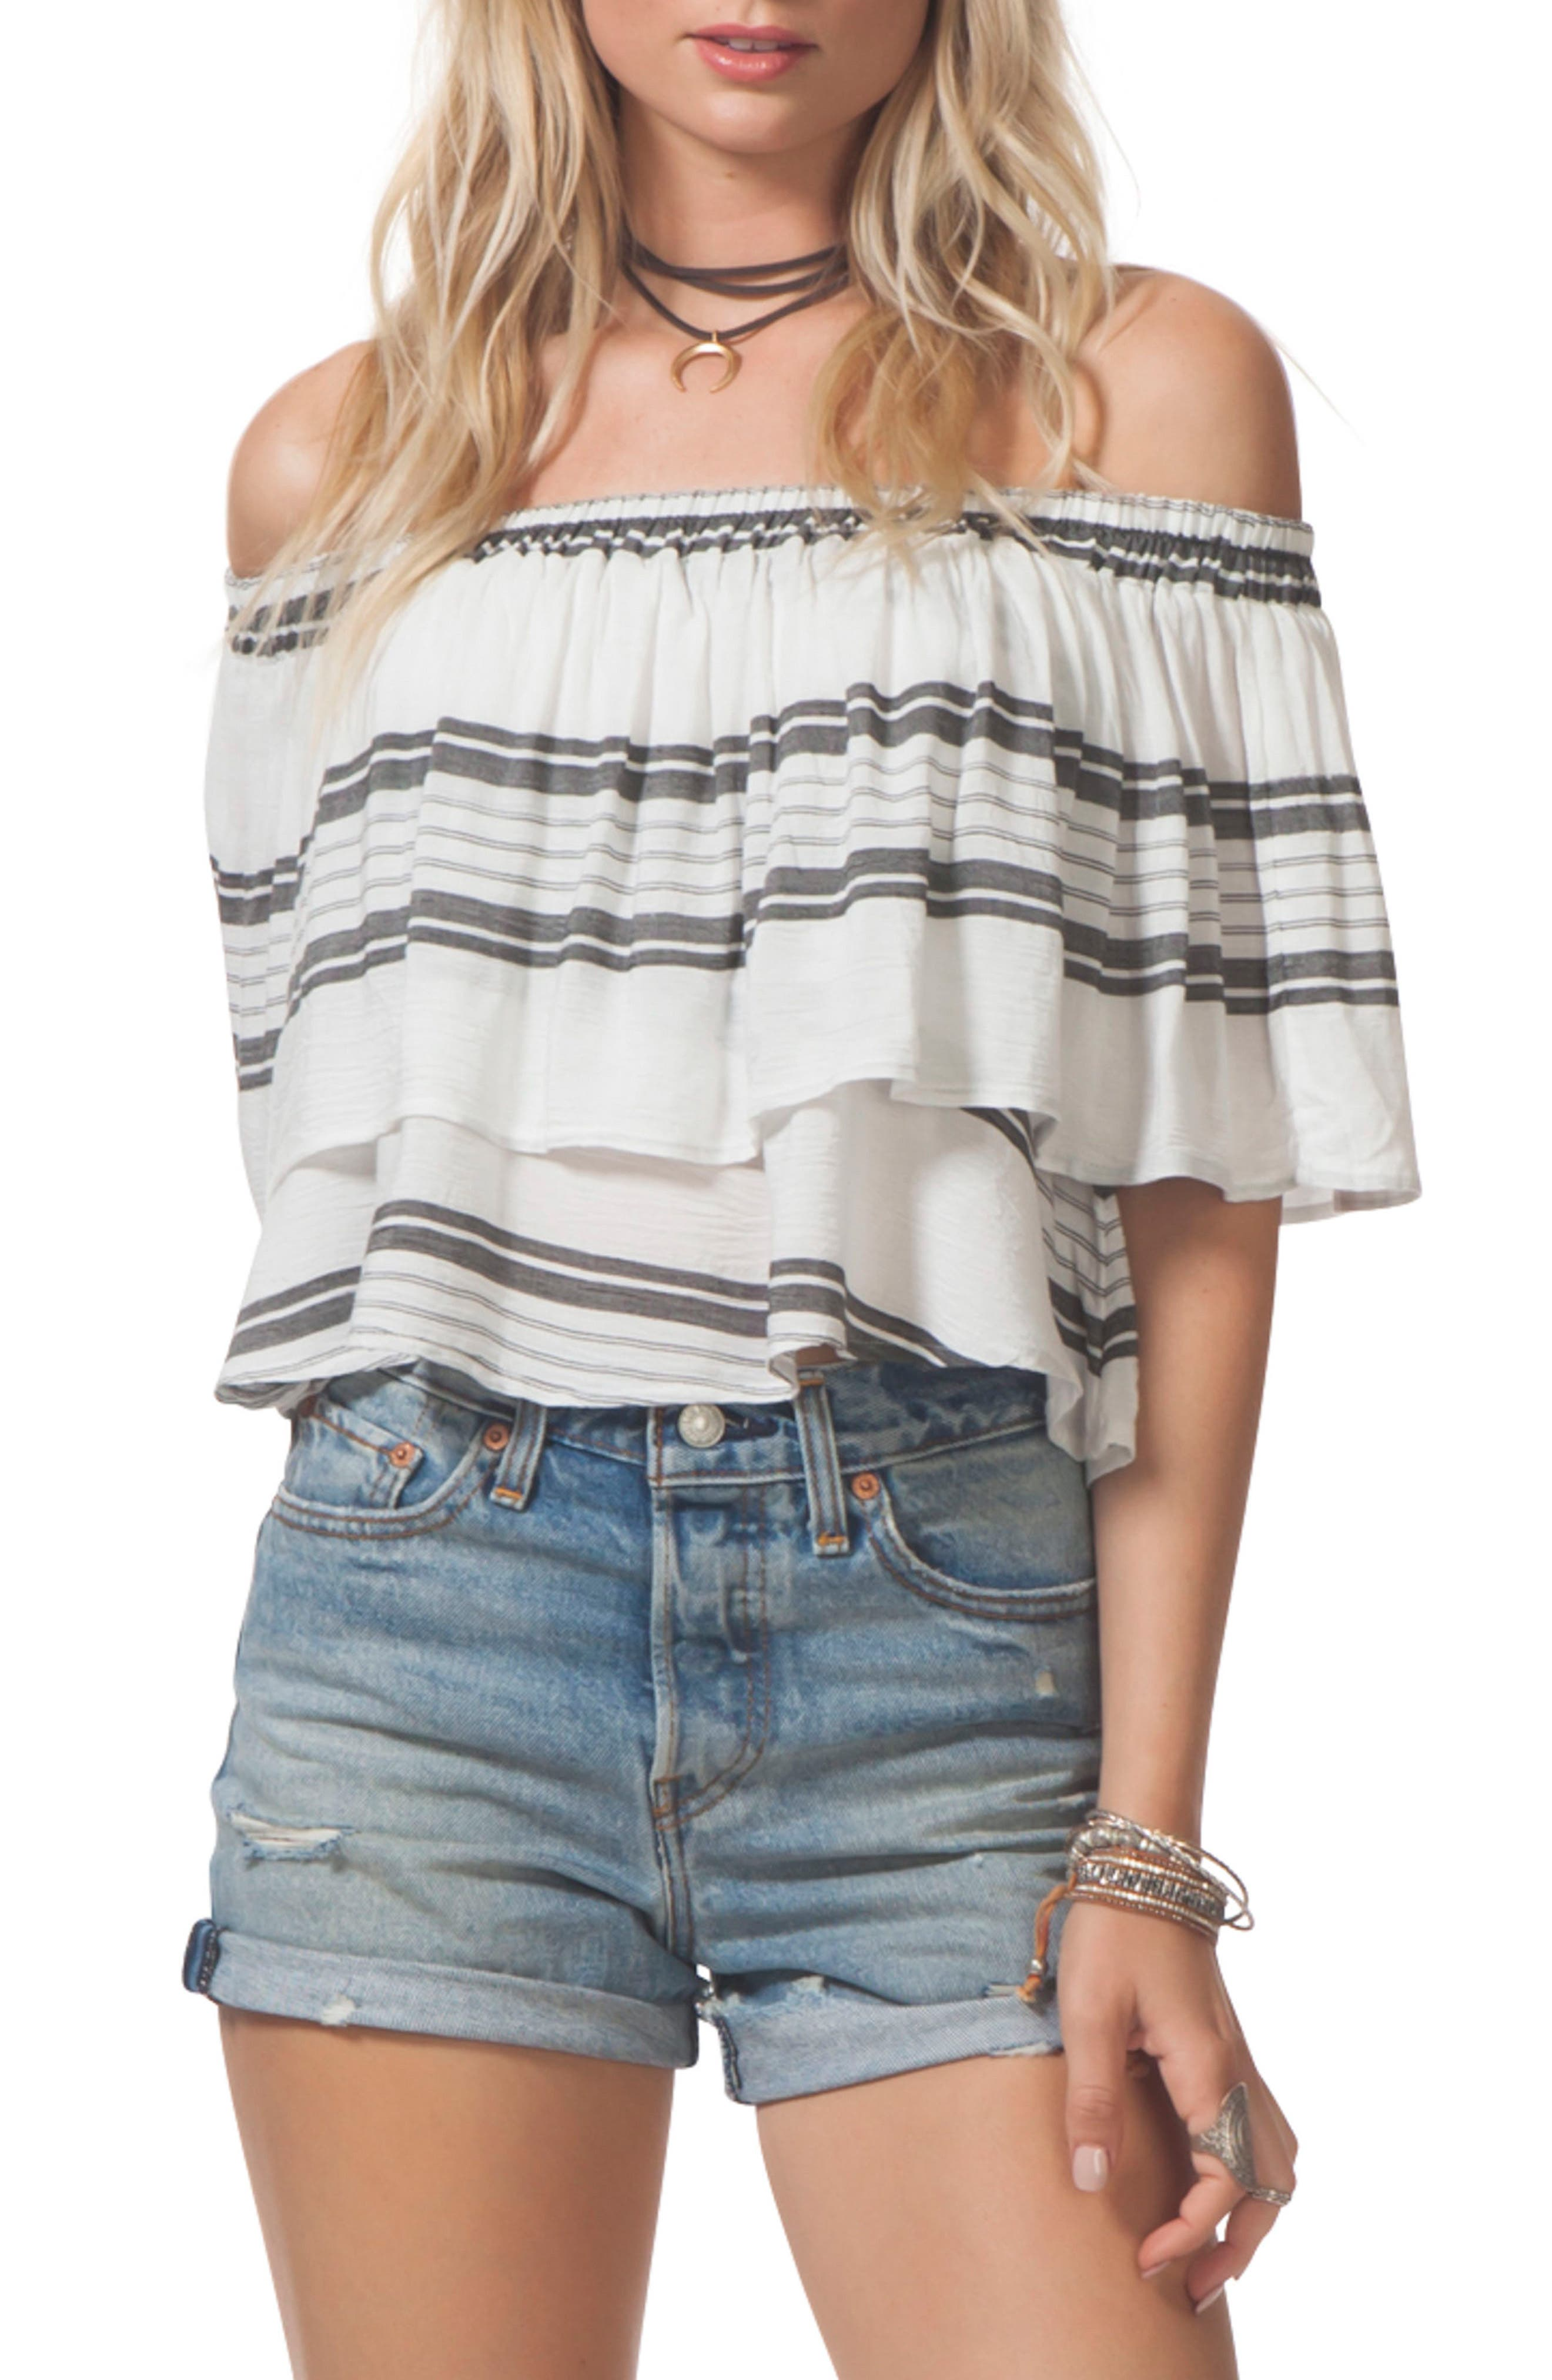 Soulmate Off the Shoulder Ruffle Top,                             Main thumbnail 1, color,                             100